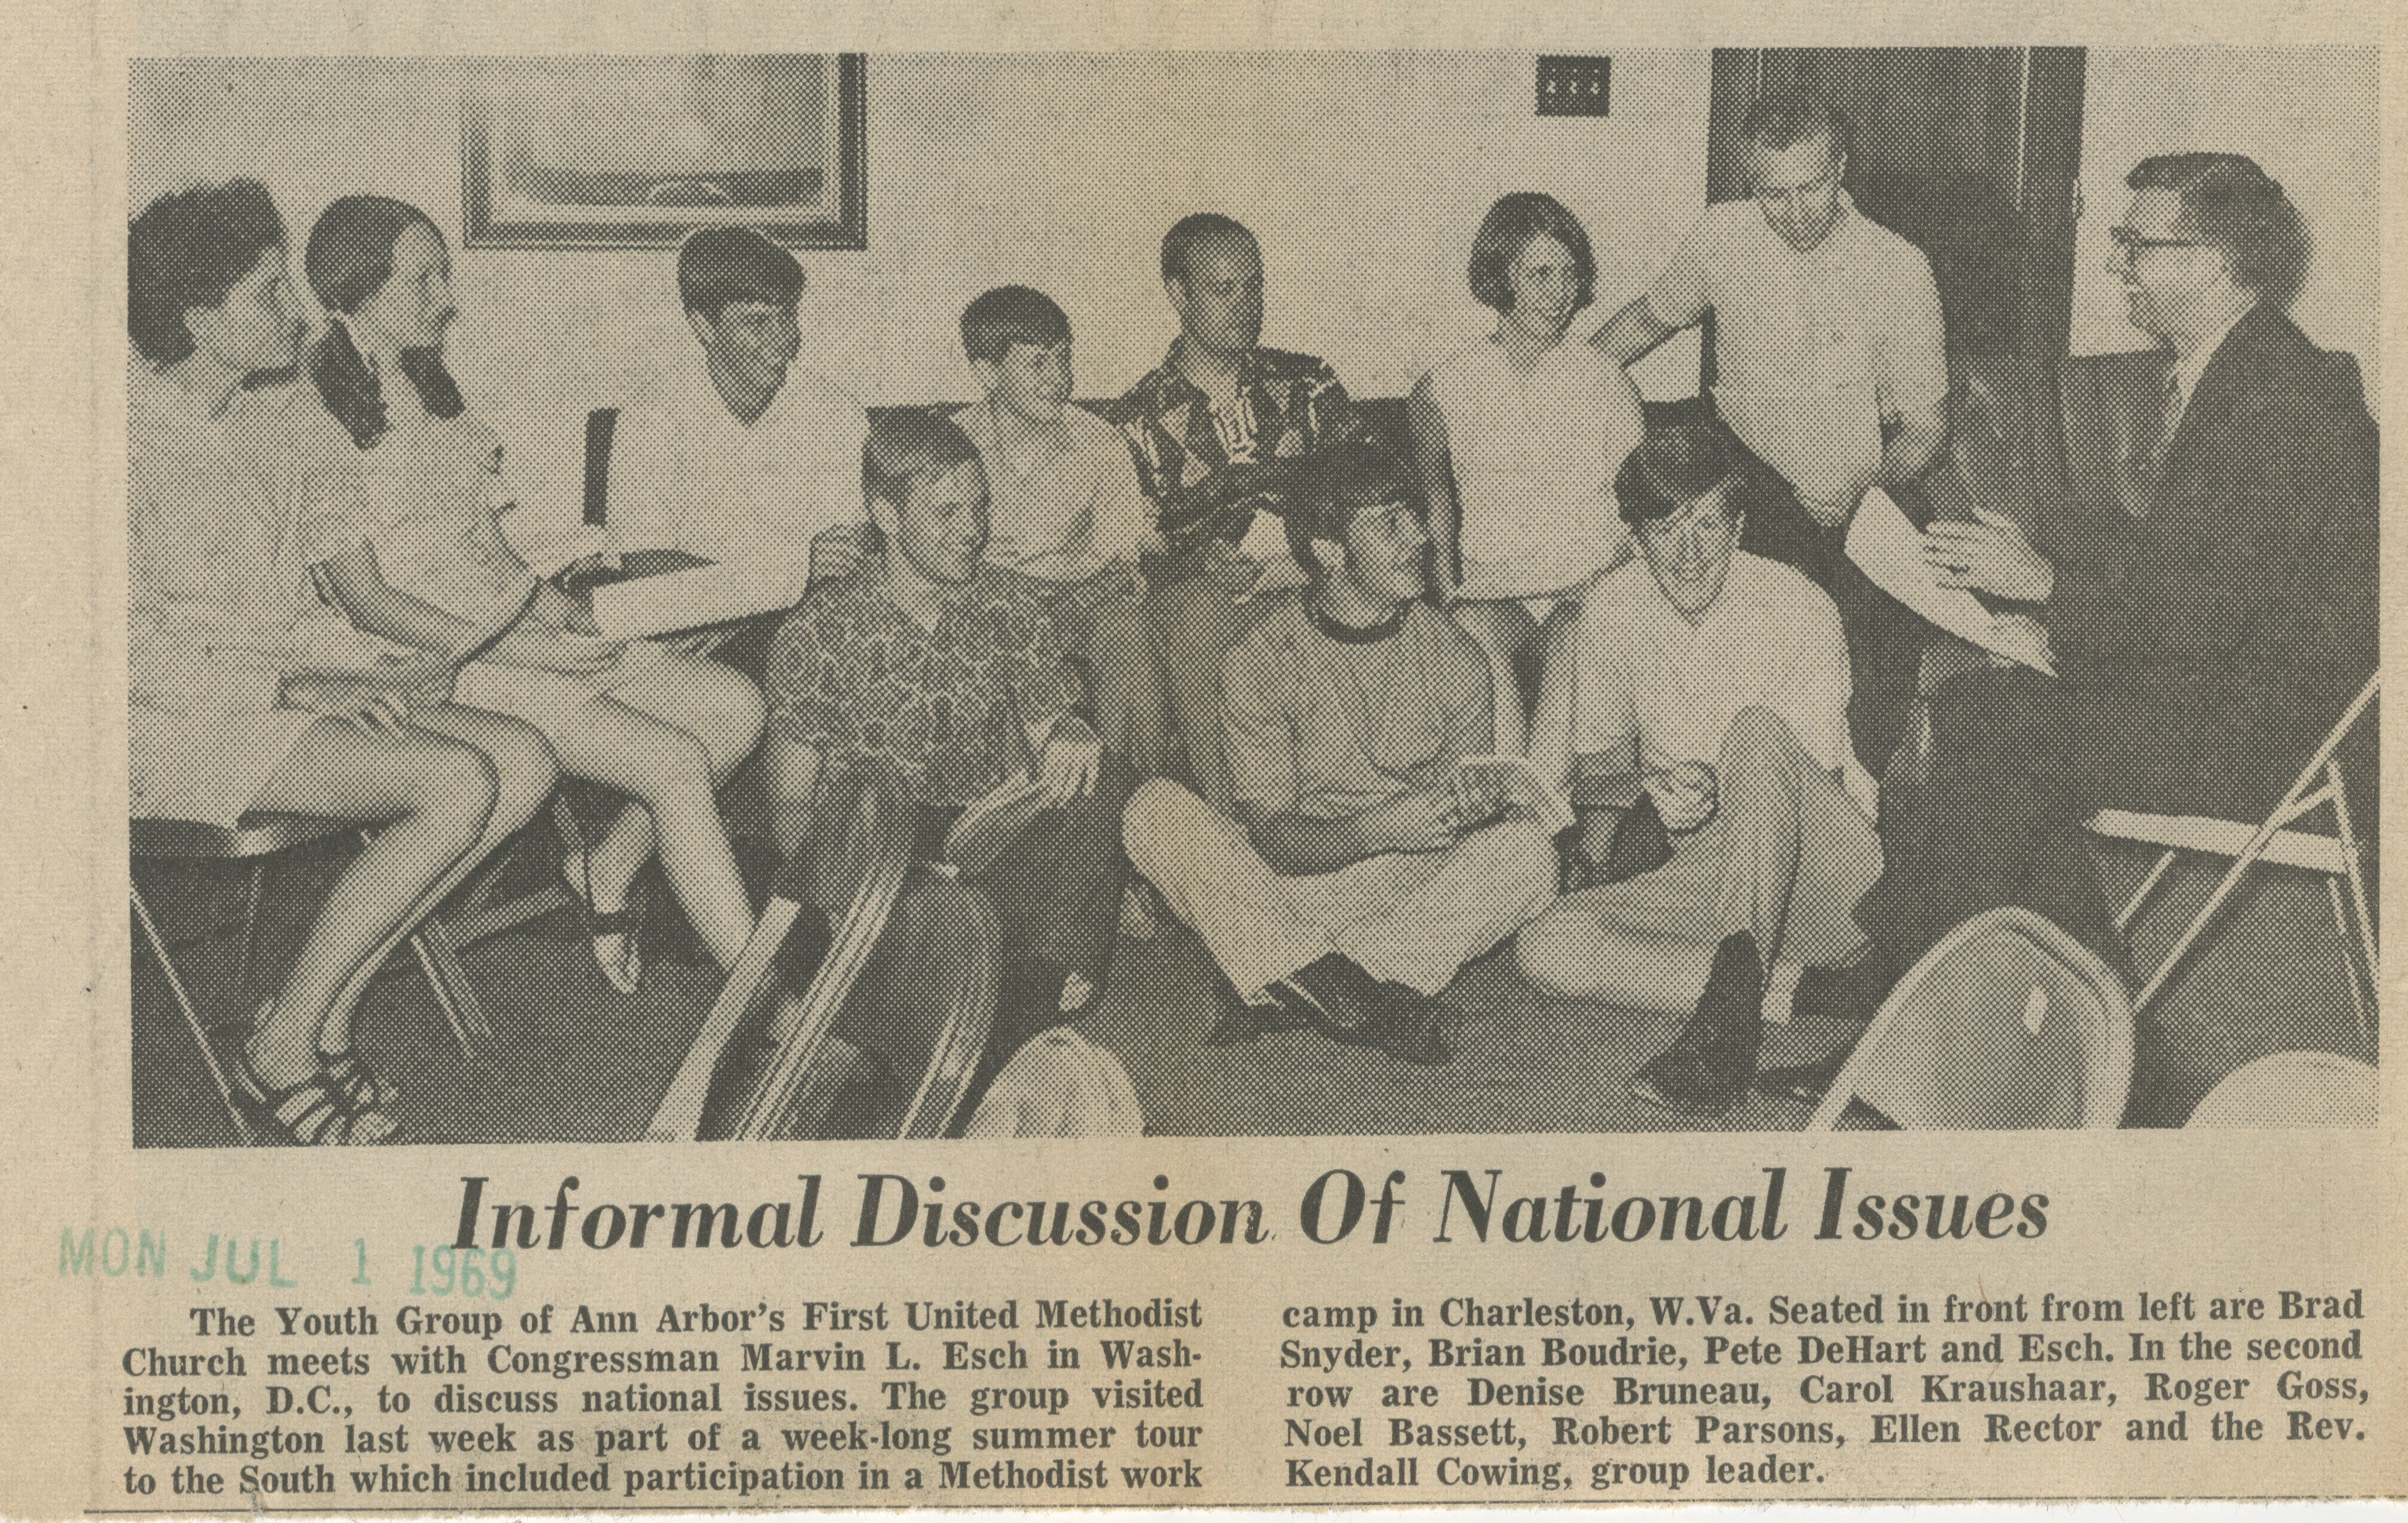 Informal Discussion Of National Issues  image